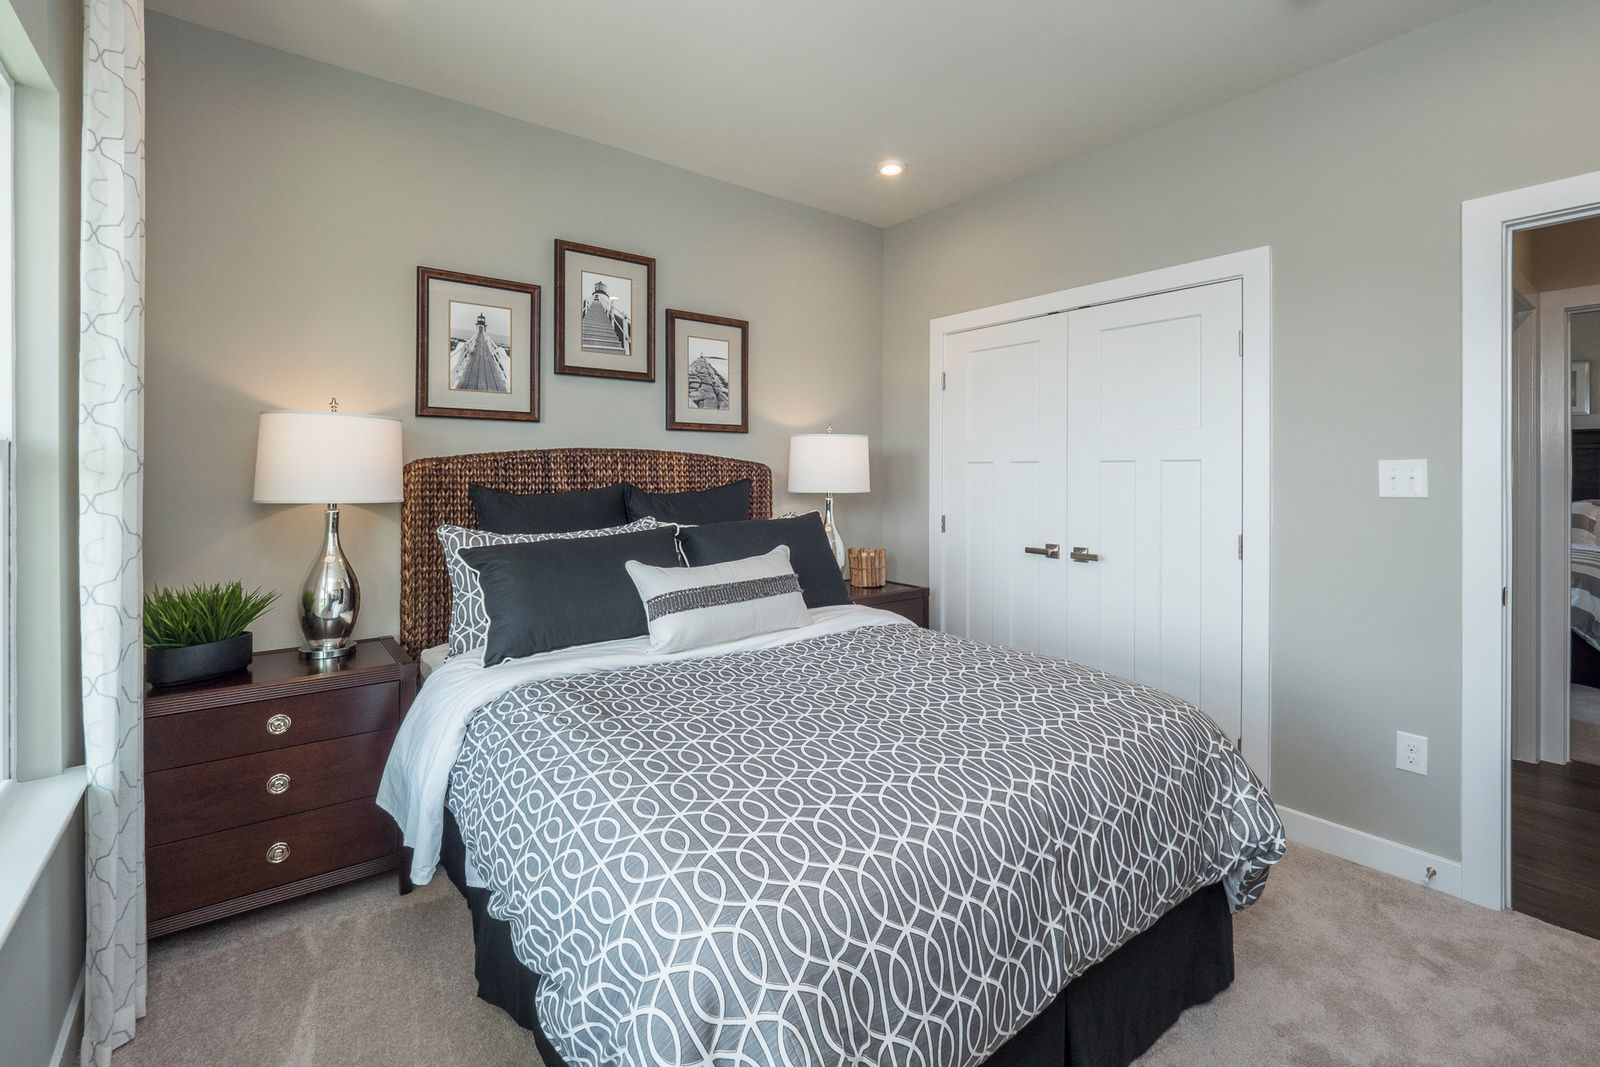 Bedroom featured in the Bramante By Ryan Homes in Sussex, DE